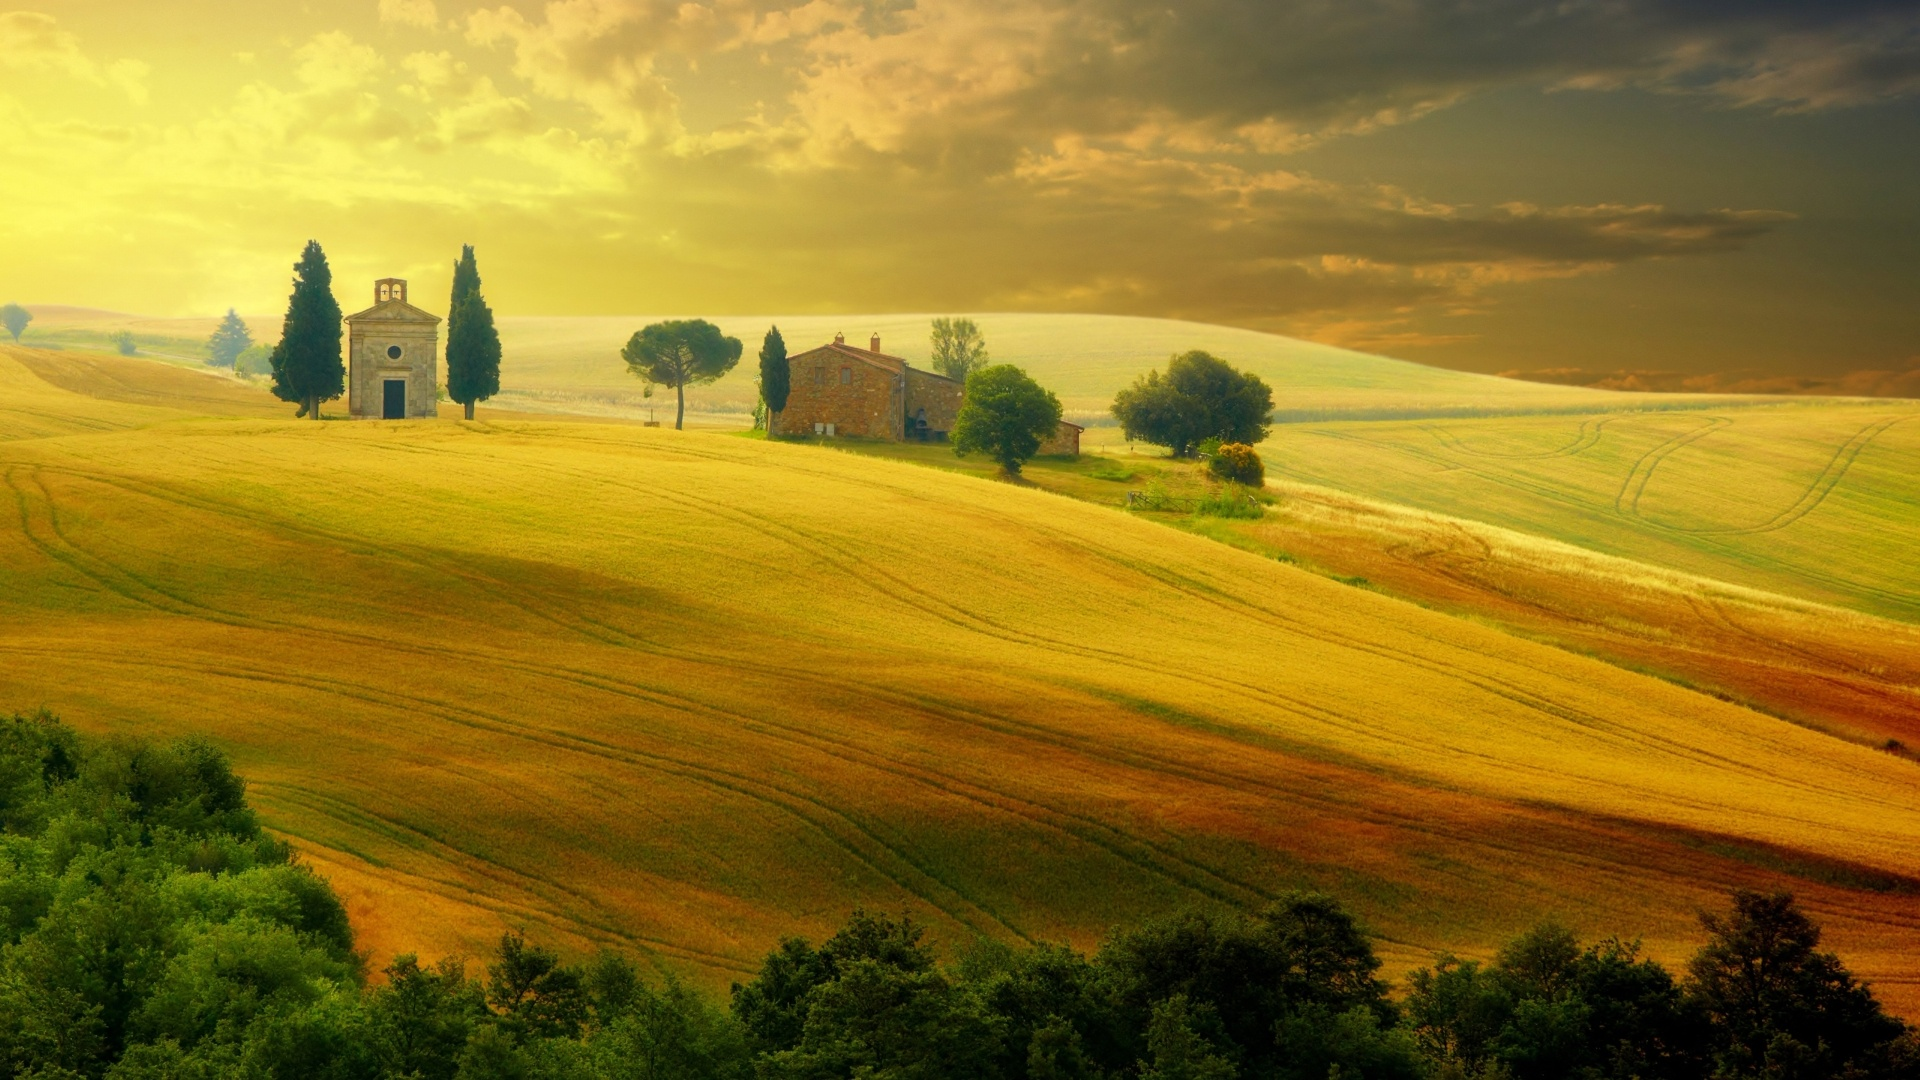 Tuscany cool wallpaper